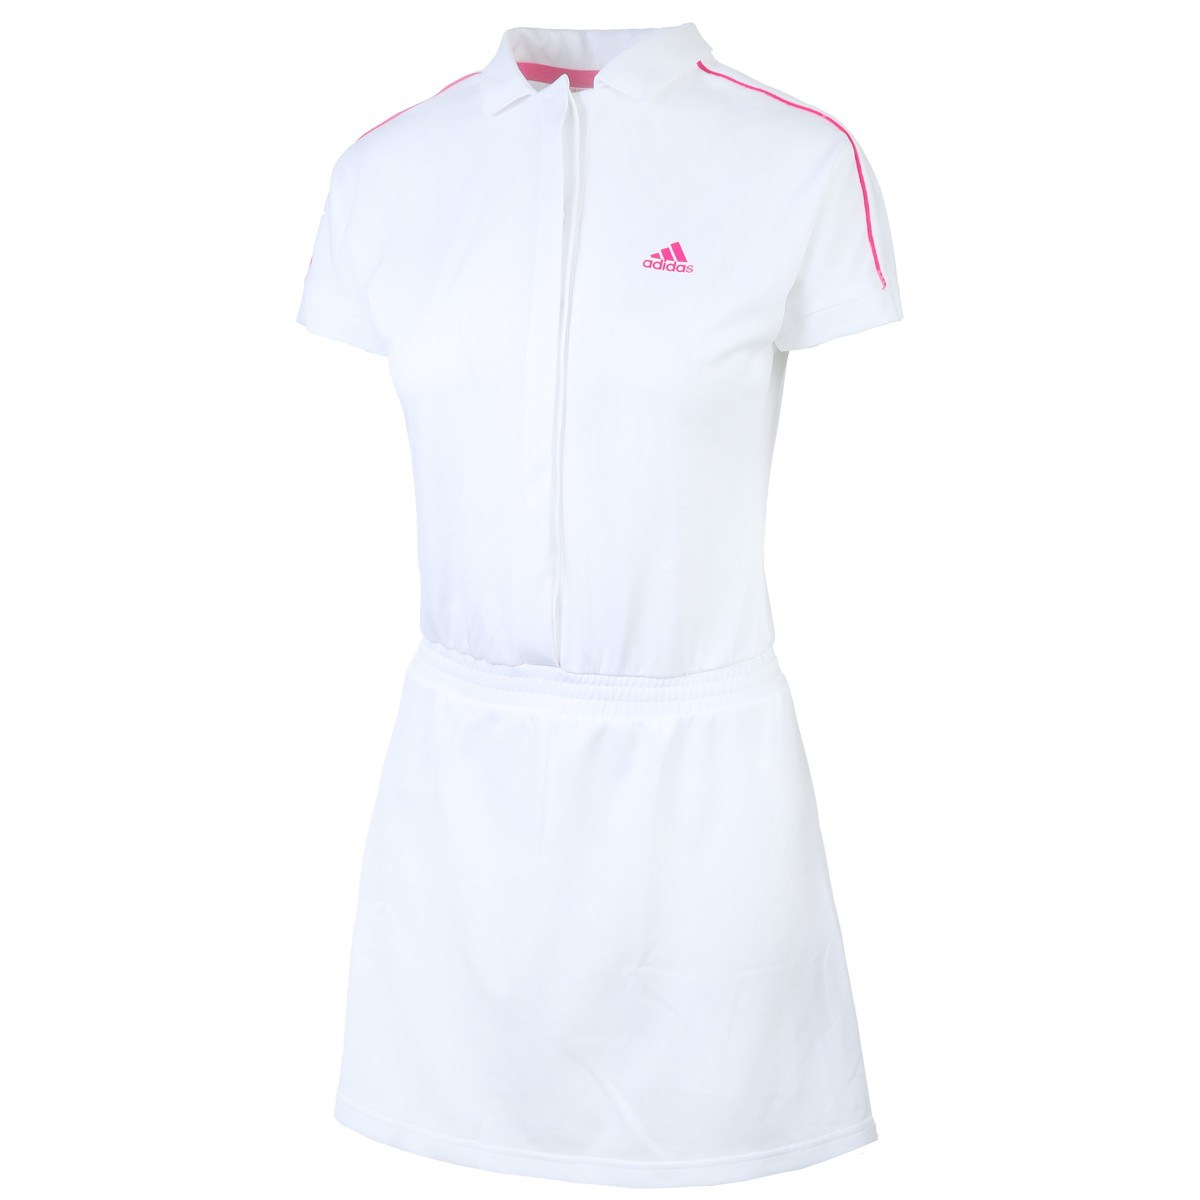 6b03b1ca5353 VESTITO ADIDAS JUNIOR RULE  9 +